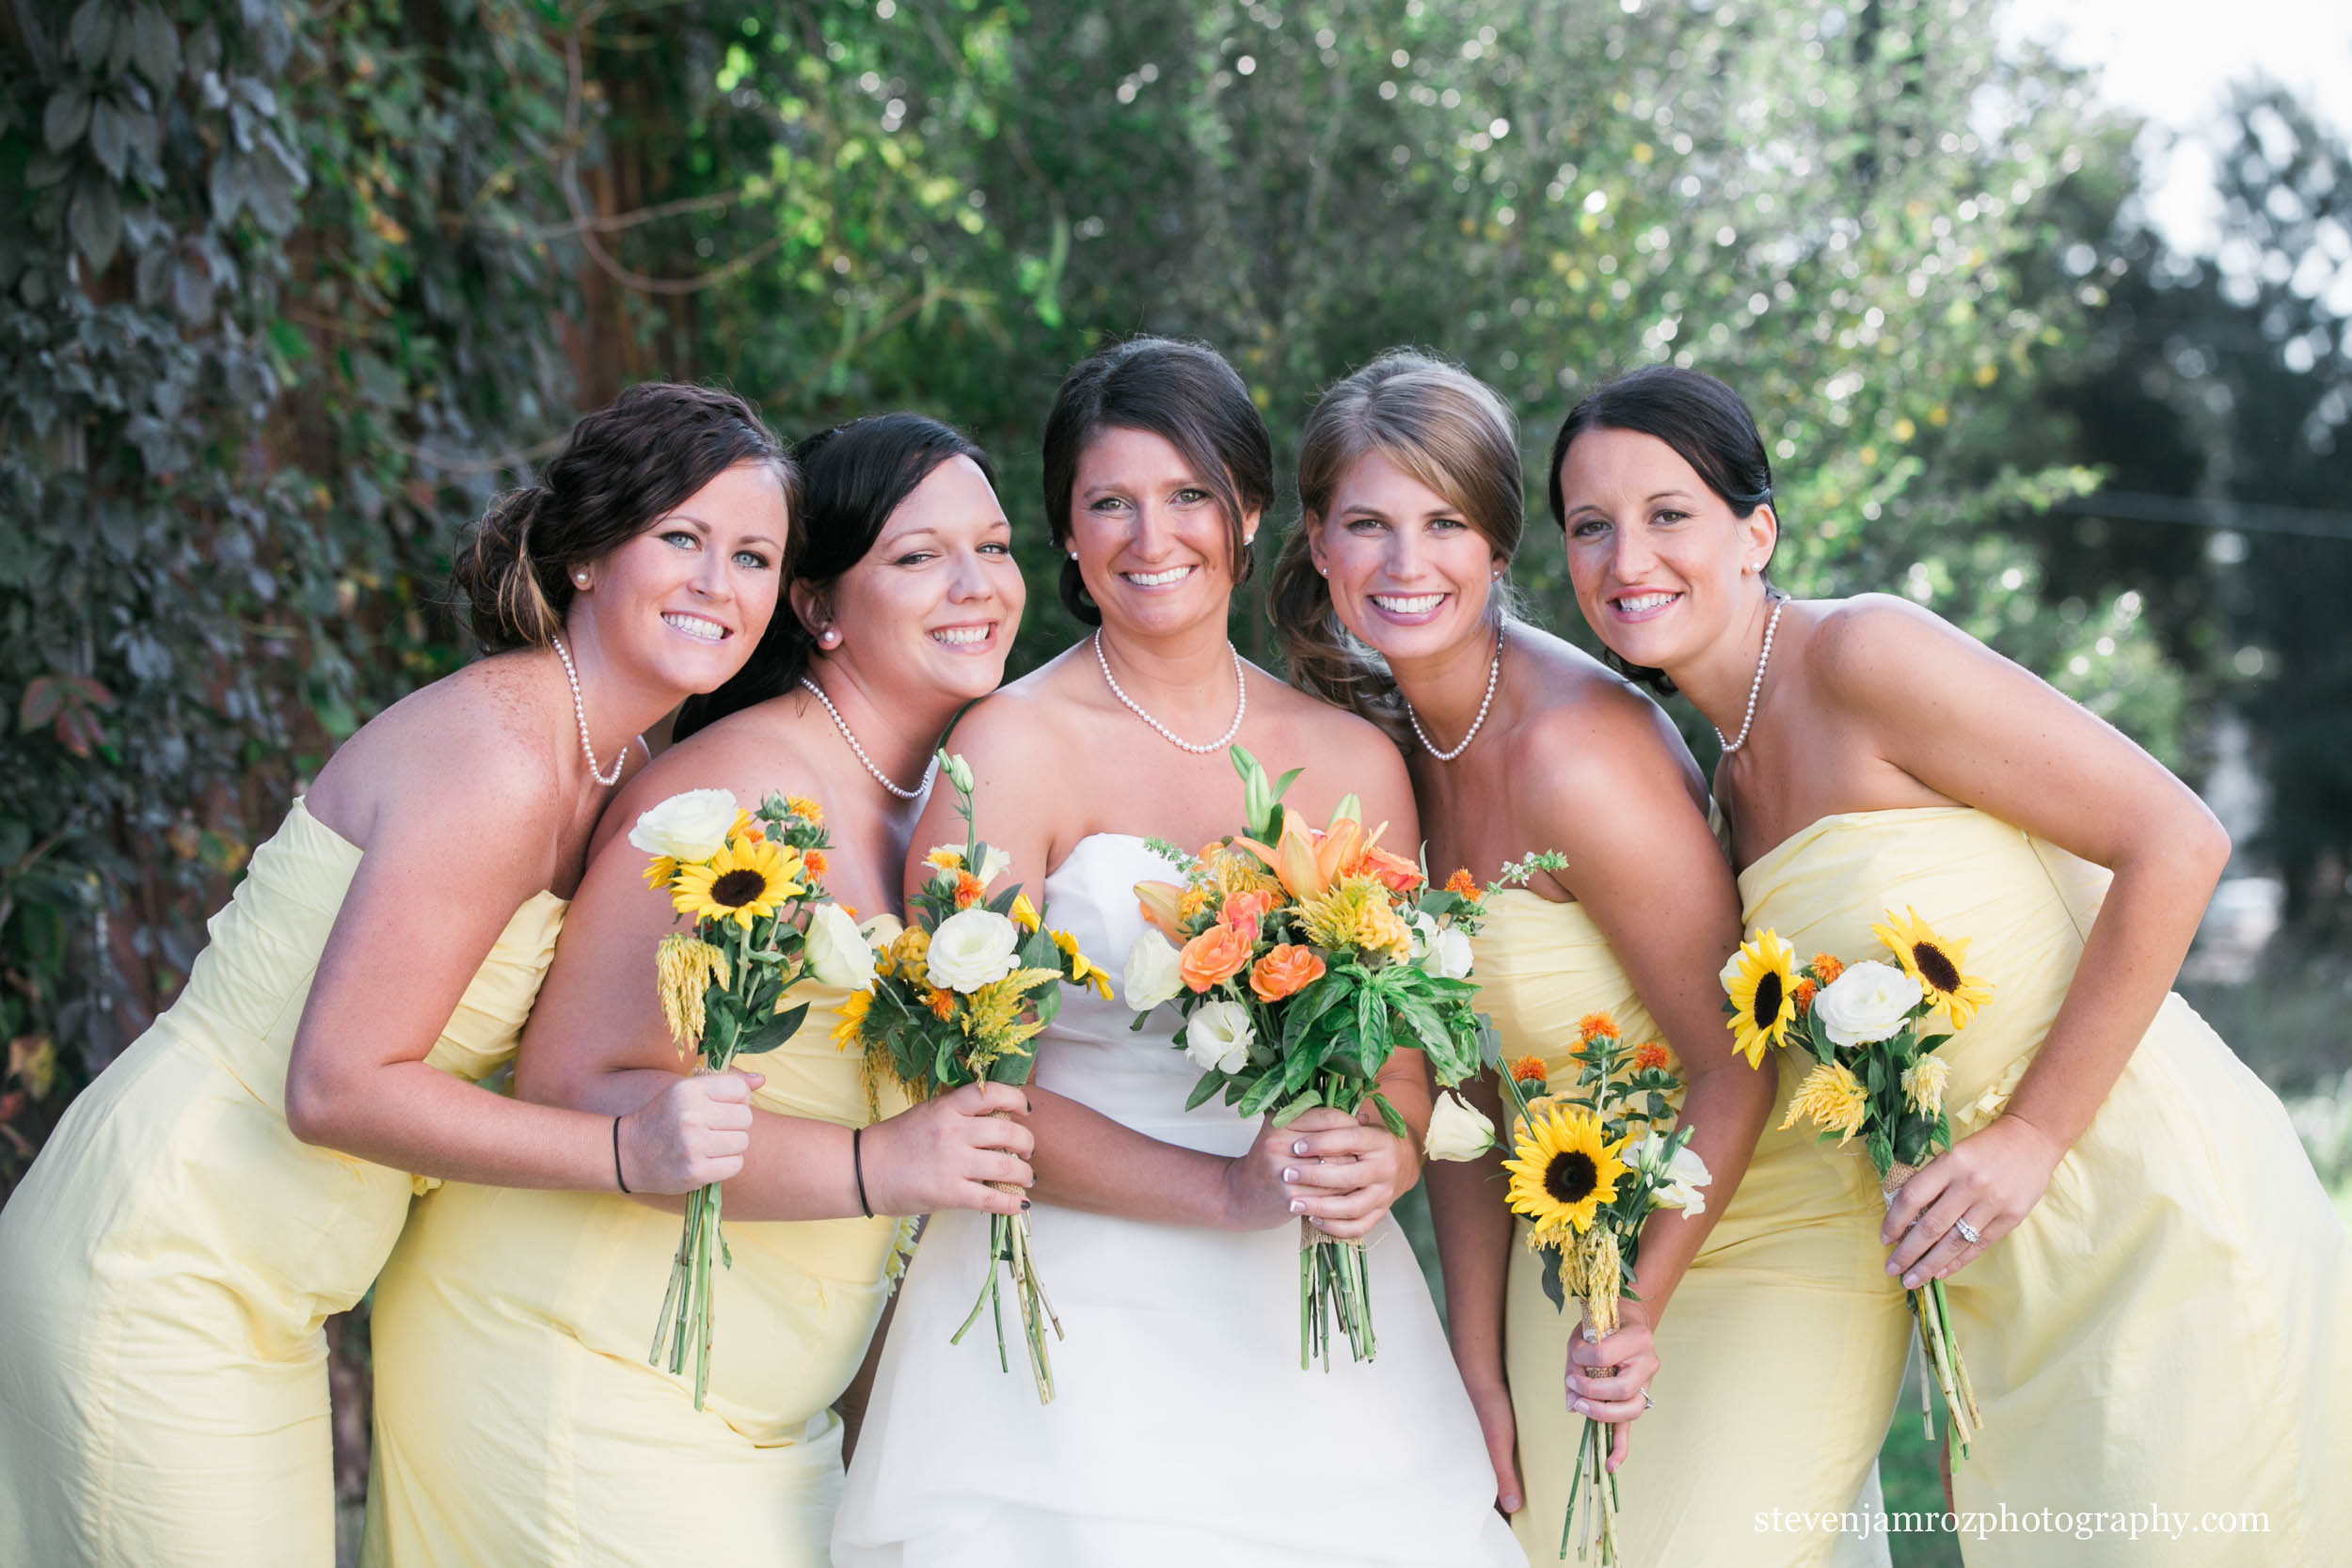 yellow-bridesmaid-dresses-steven-jamroz-photography-0167.jpg